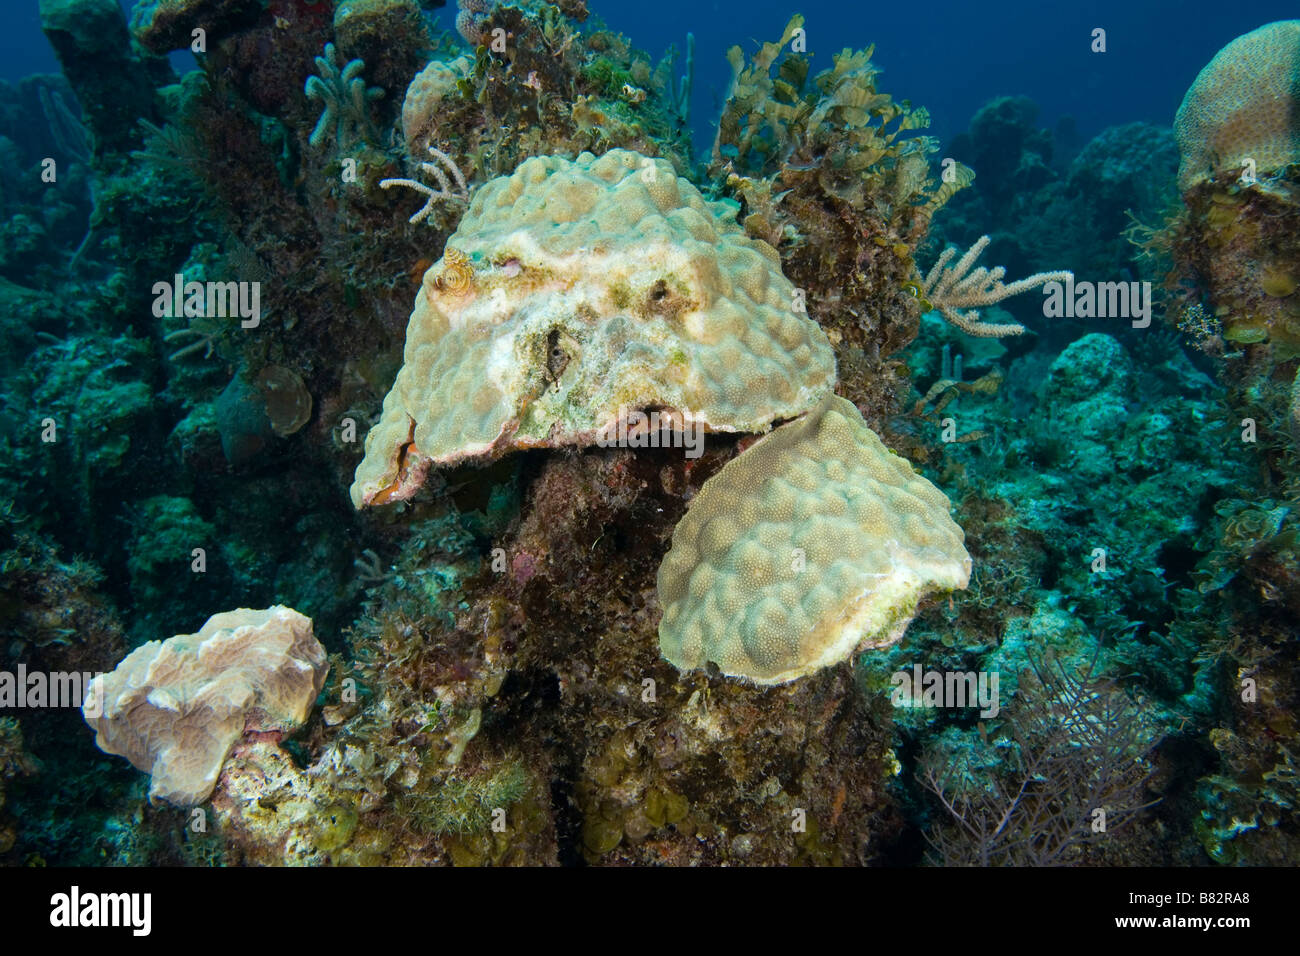 Damaged corals Bahamas, global warming, ecological disaster, dead coral, hard coral, warm water, bleaching - Stock Image